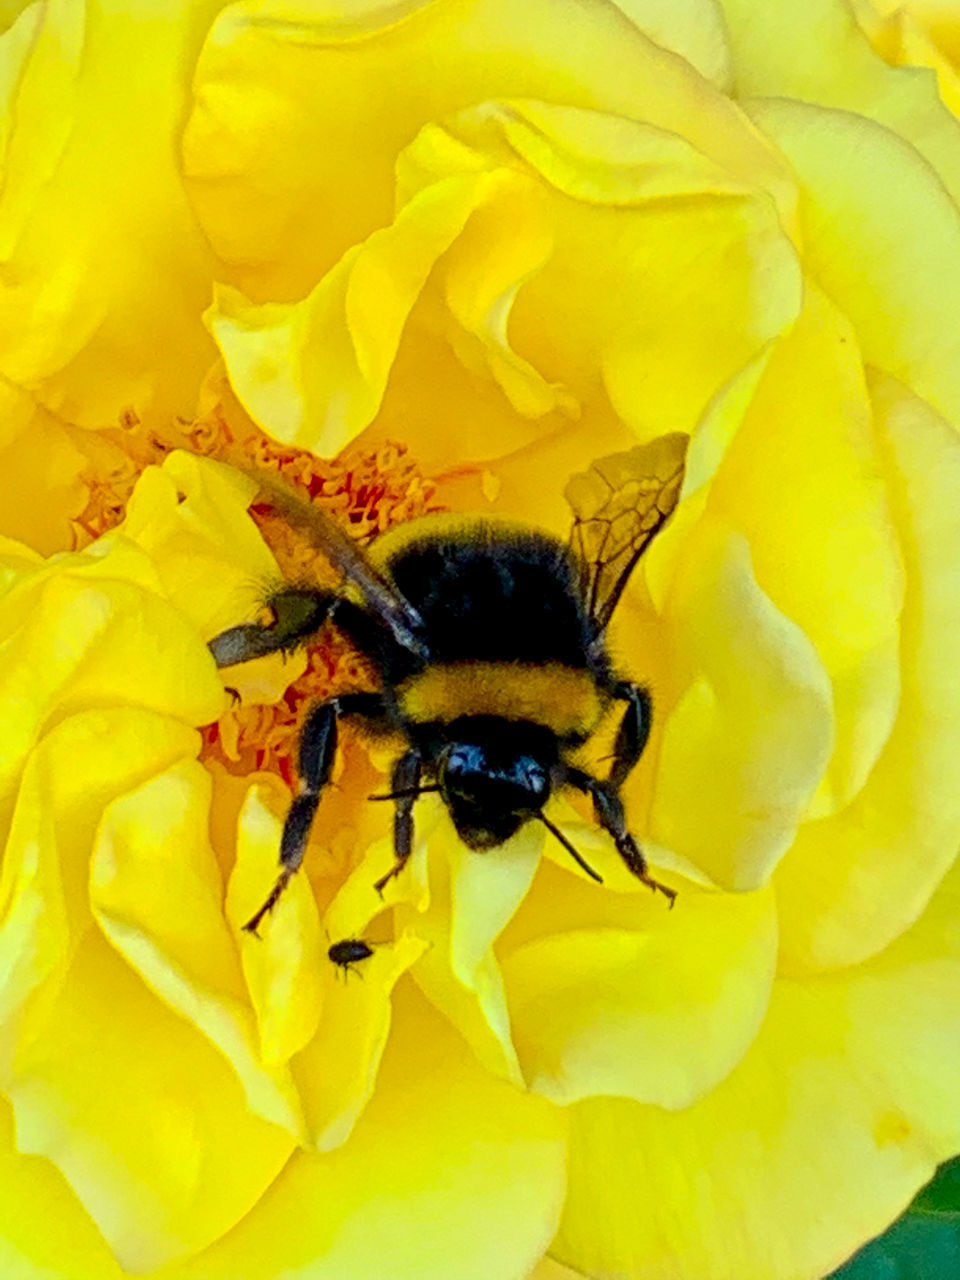 CLOSE-UP OF BEE POLLINATING ON YELLOW ROSE